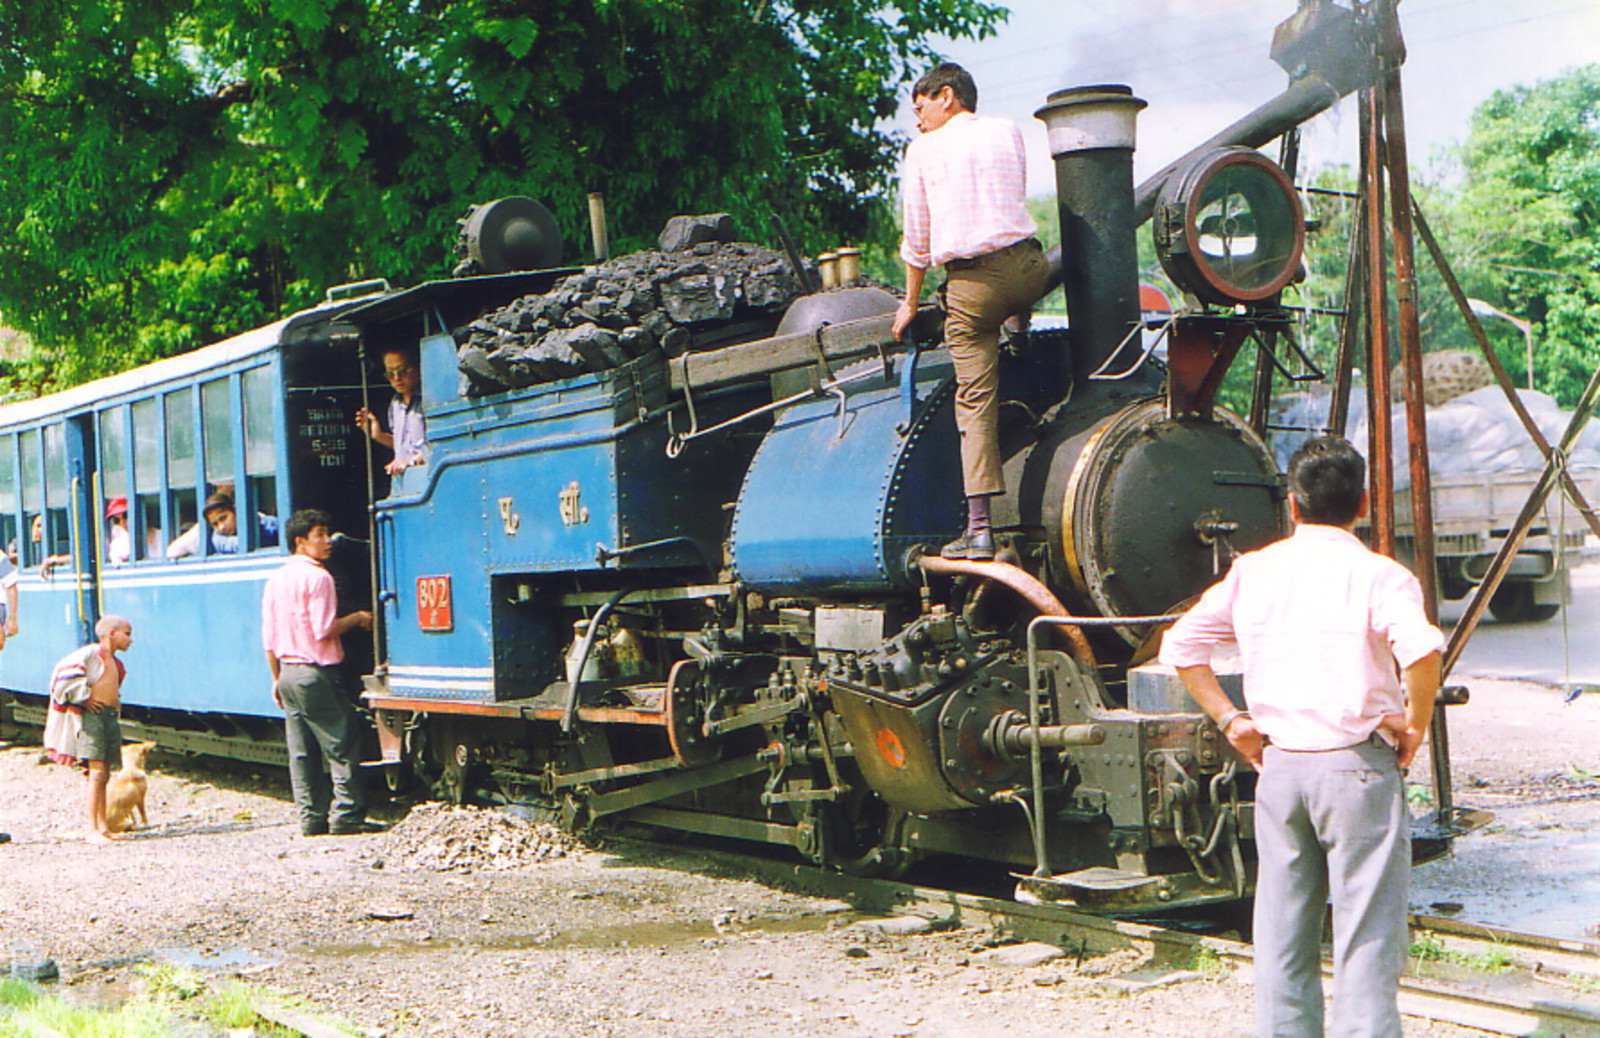 The Toy Train to Darjeeling